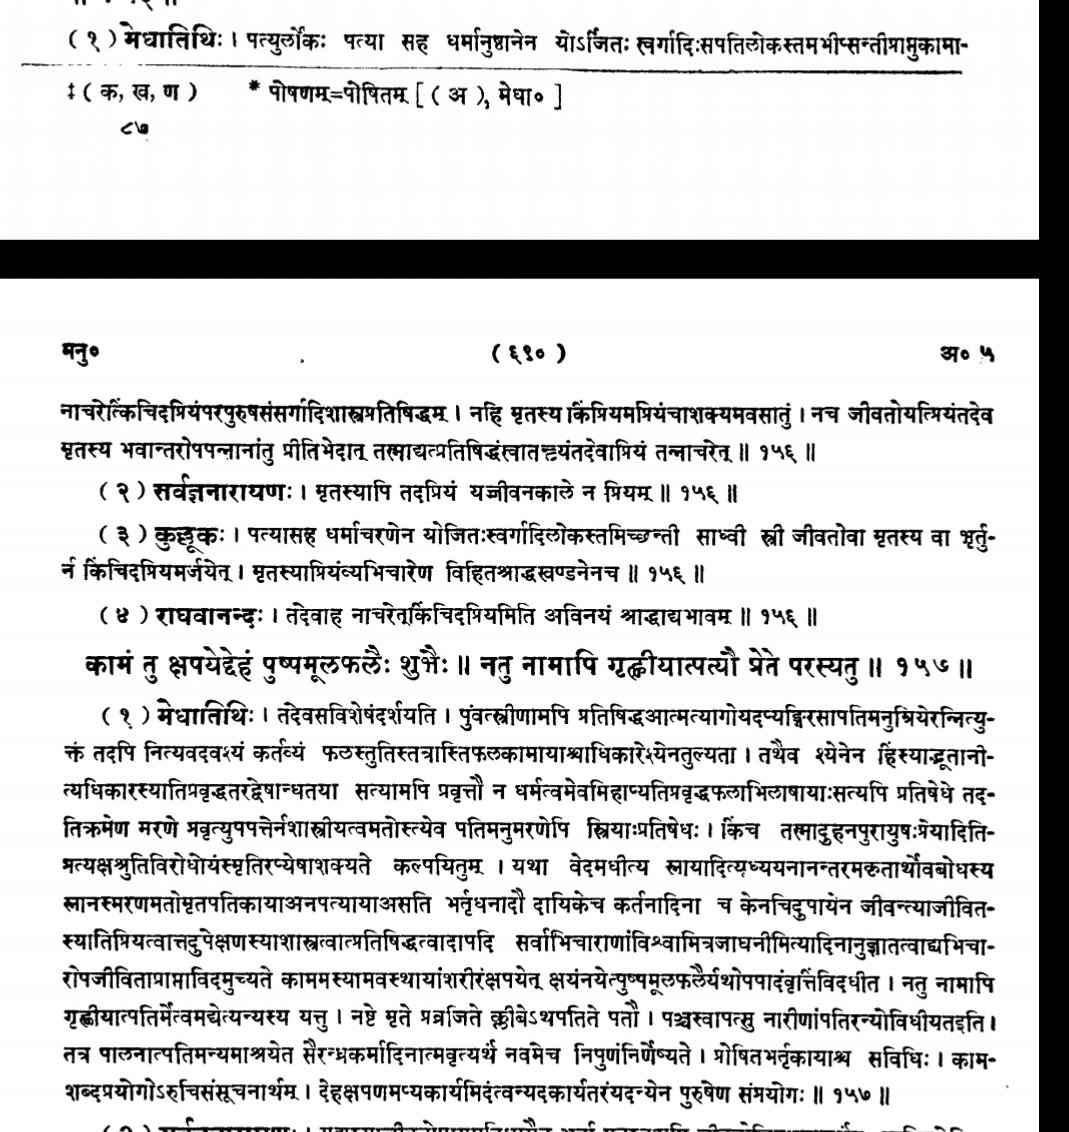 Medhatithi in his commentary on Manusmriti 5.157 says killing self is against shastras(vedas) hence Sati is prohibited even when it is mentioned in Smriti texts like Angirasmriti.